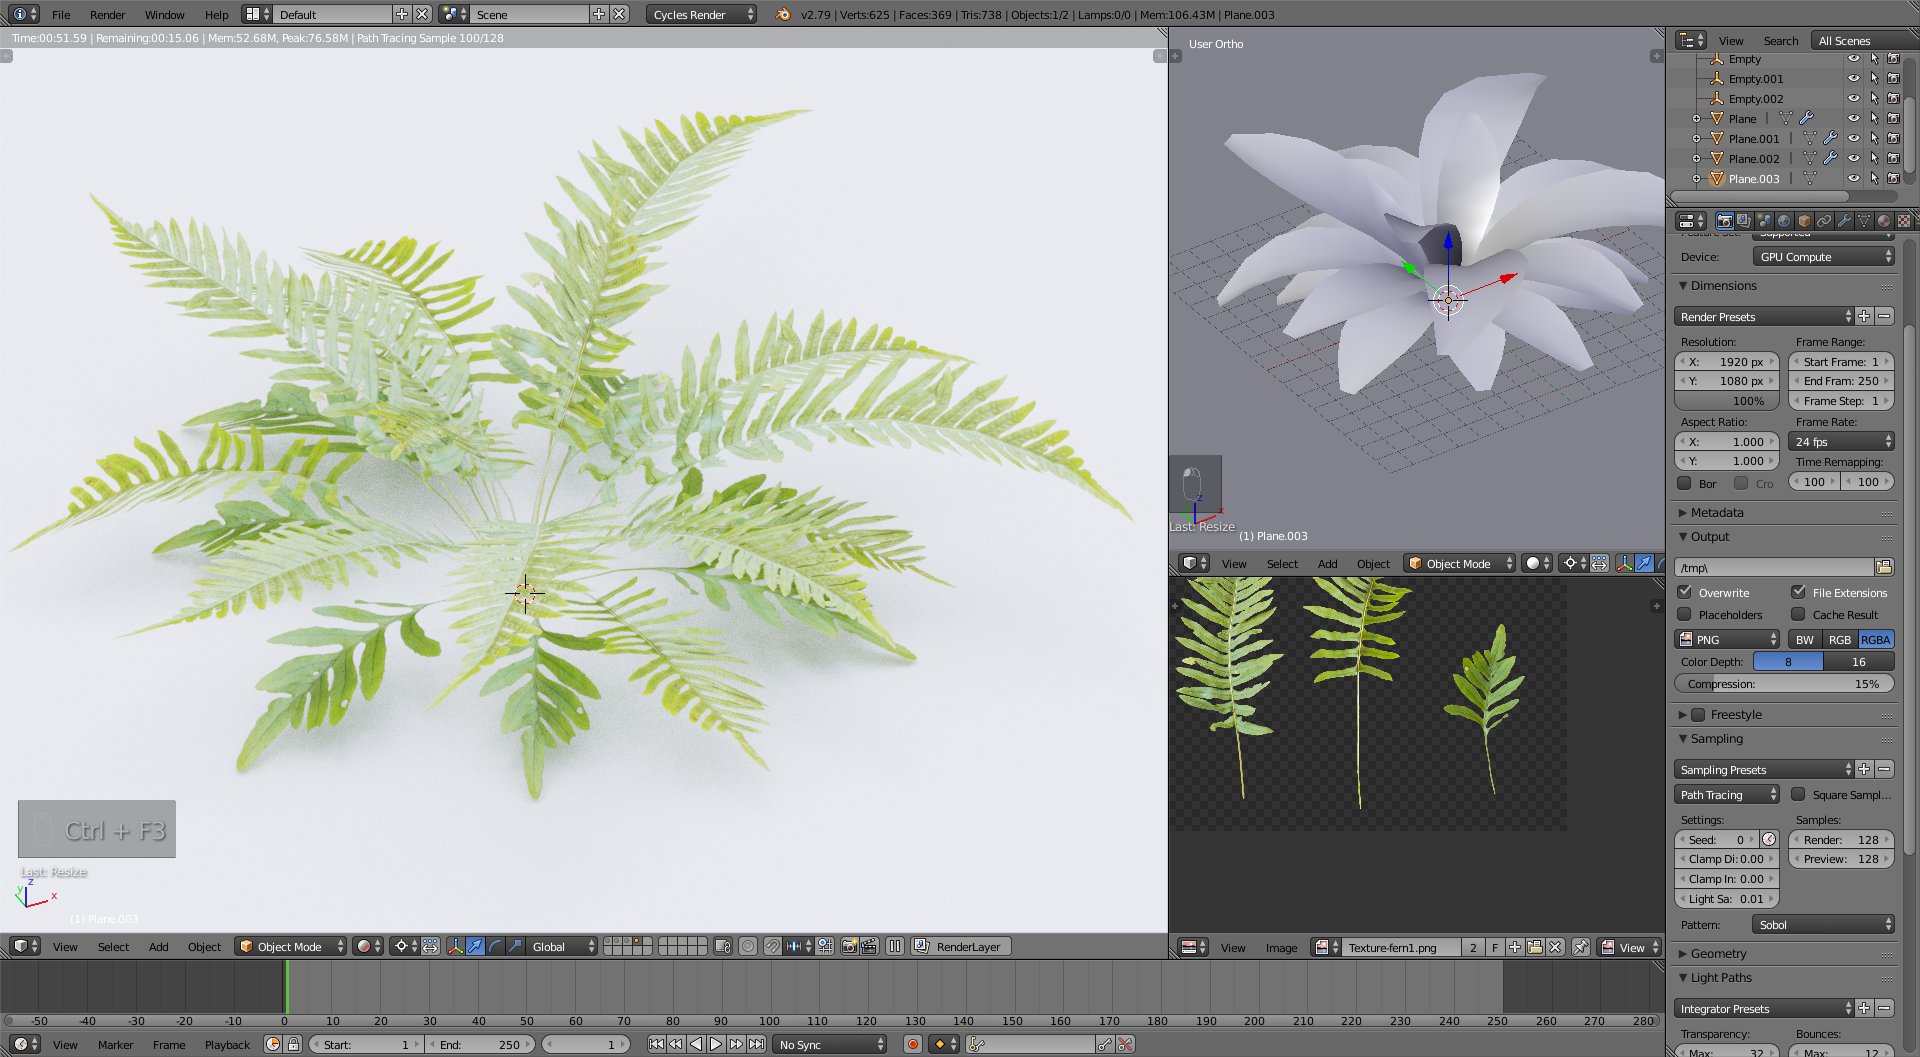 Creating fern lowpoly models with your own textures - BlenderNation